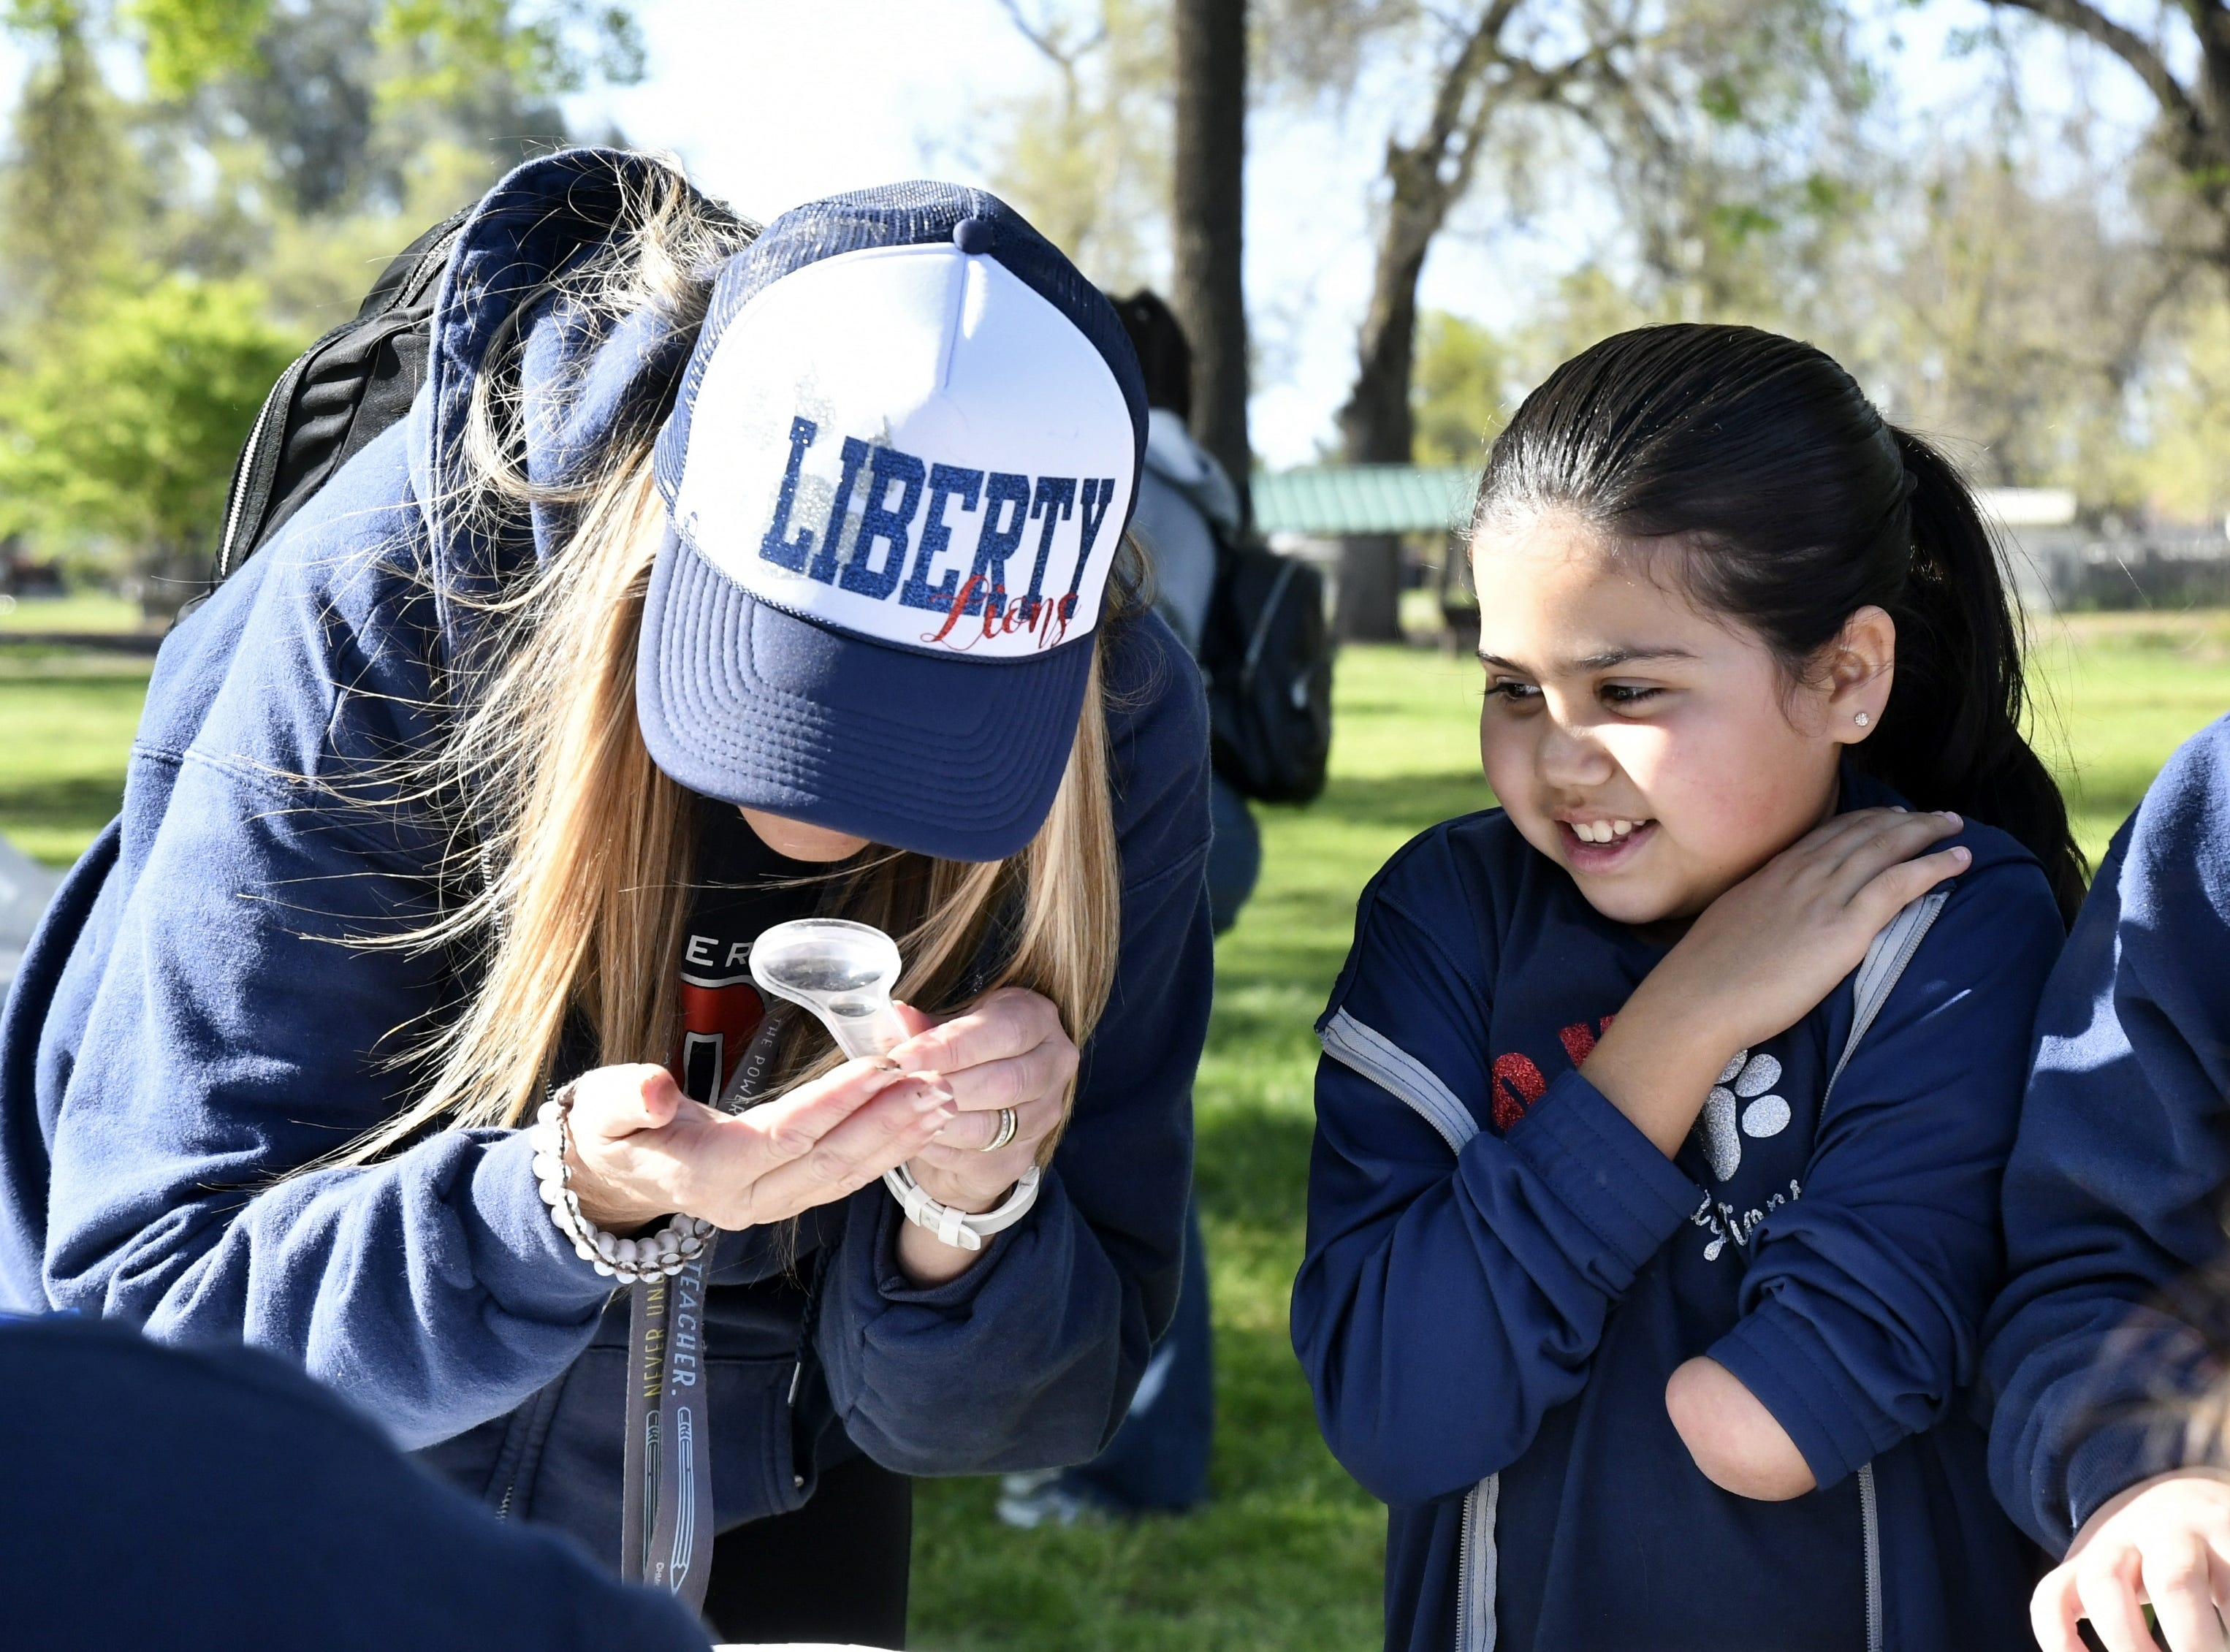 Nearly 100 students celebrate Arbor Day at Mooney Grove Park on Thursday, March 28, 2019.